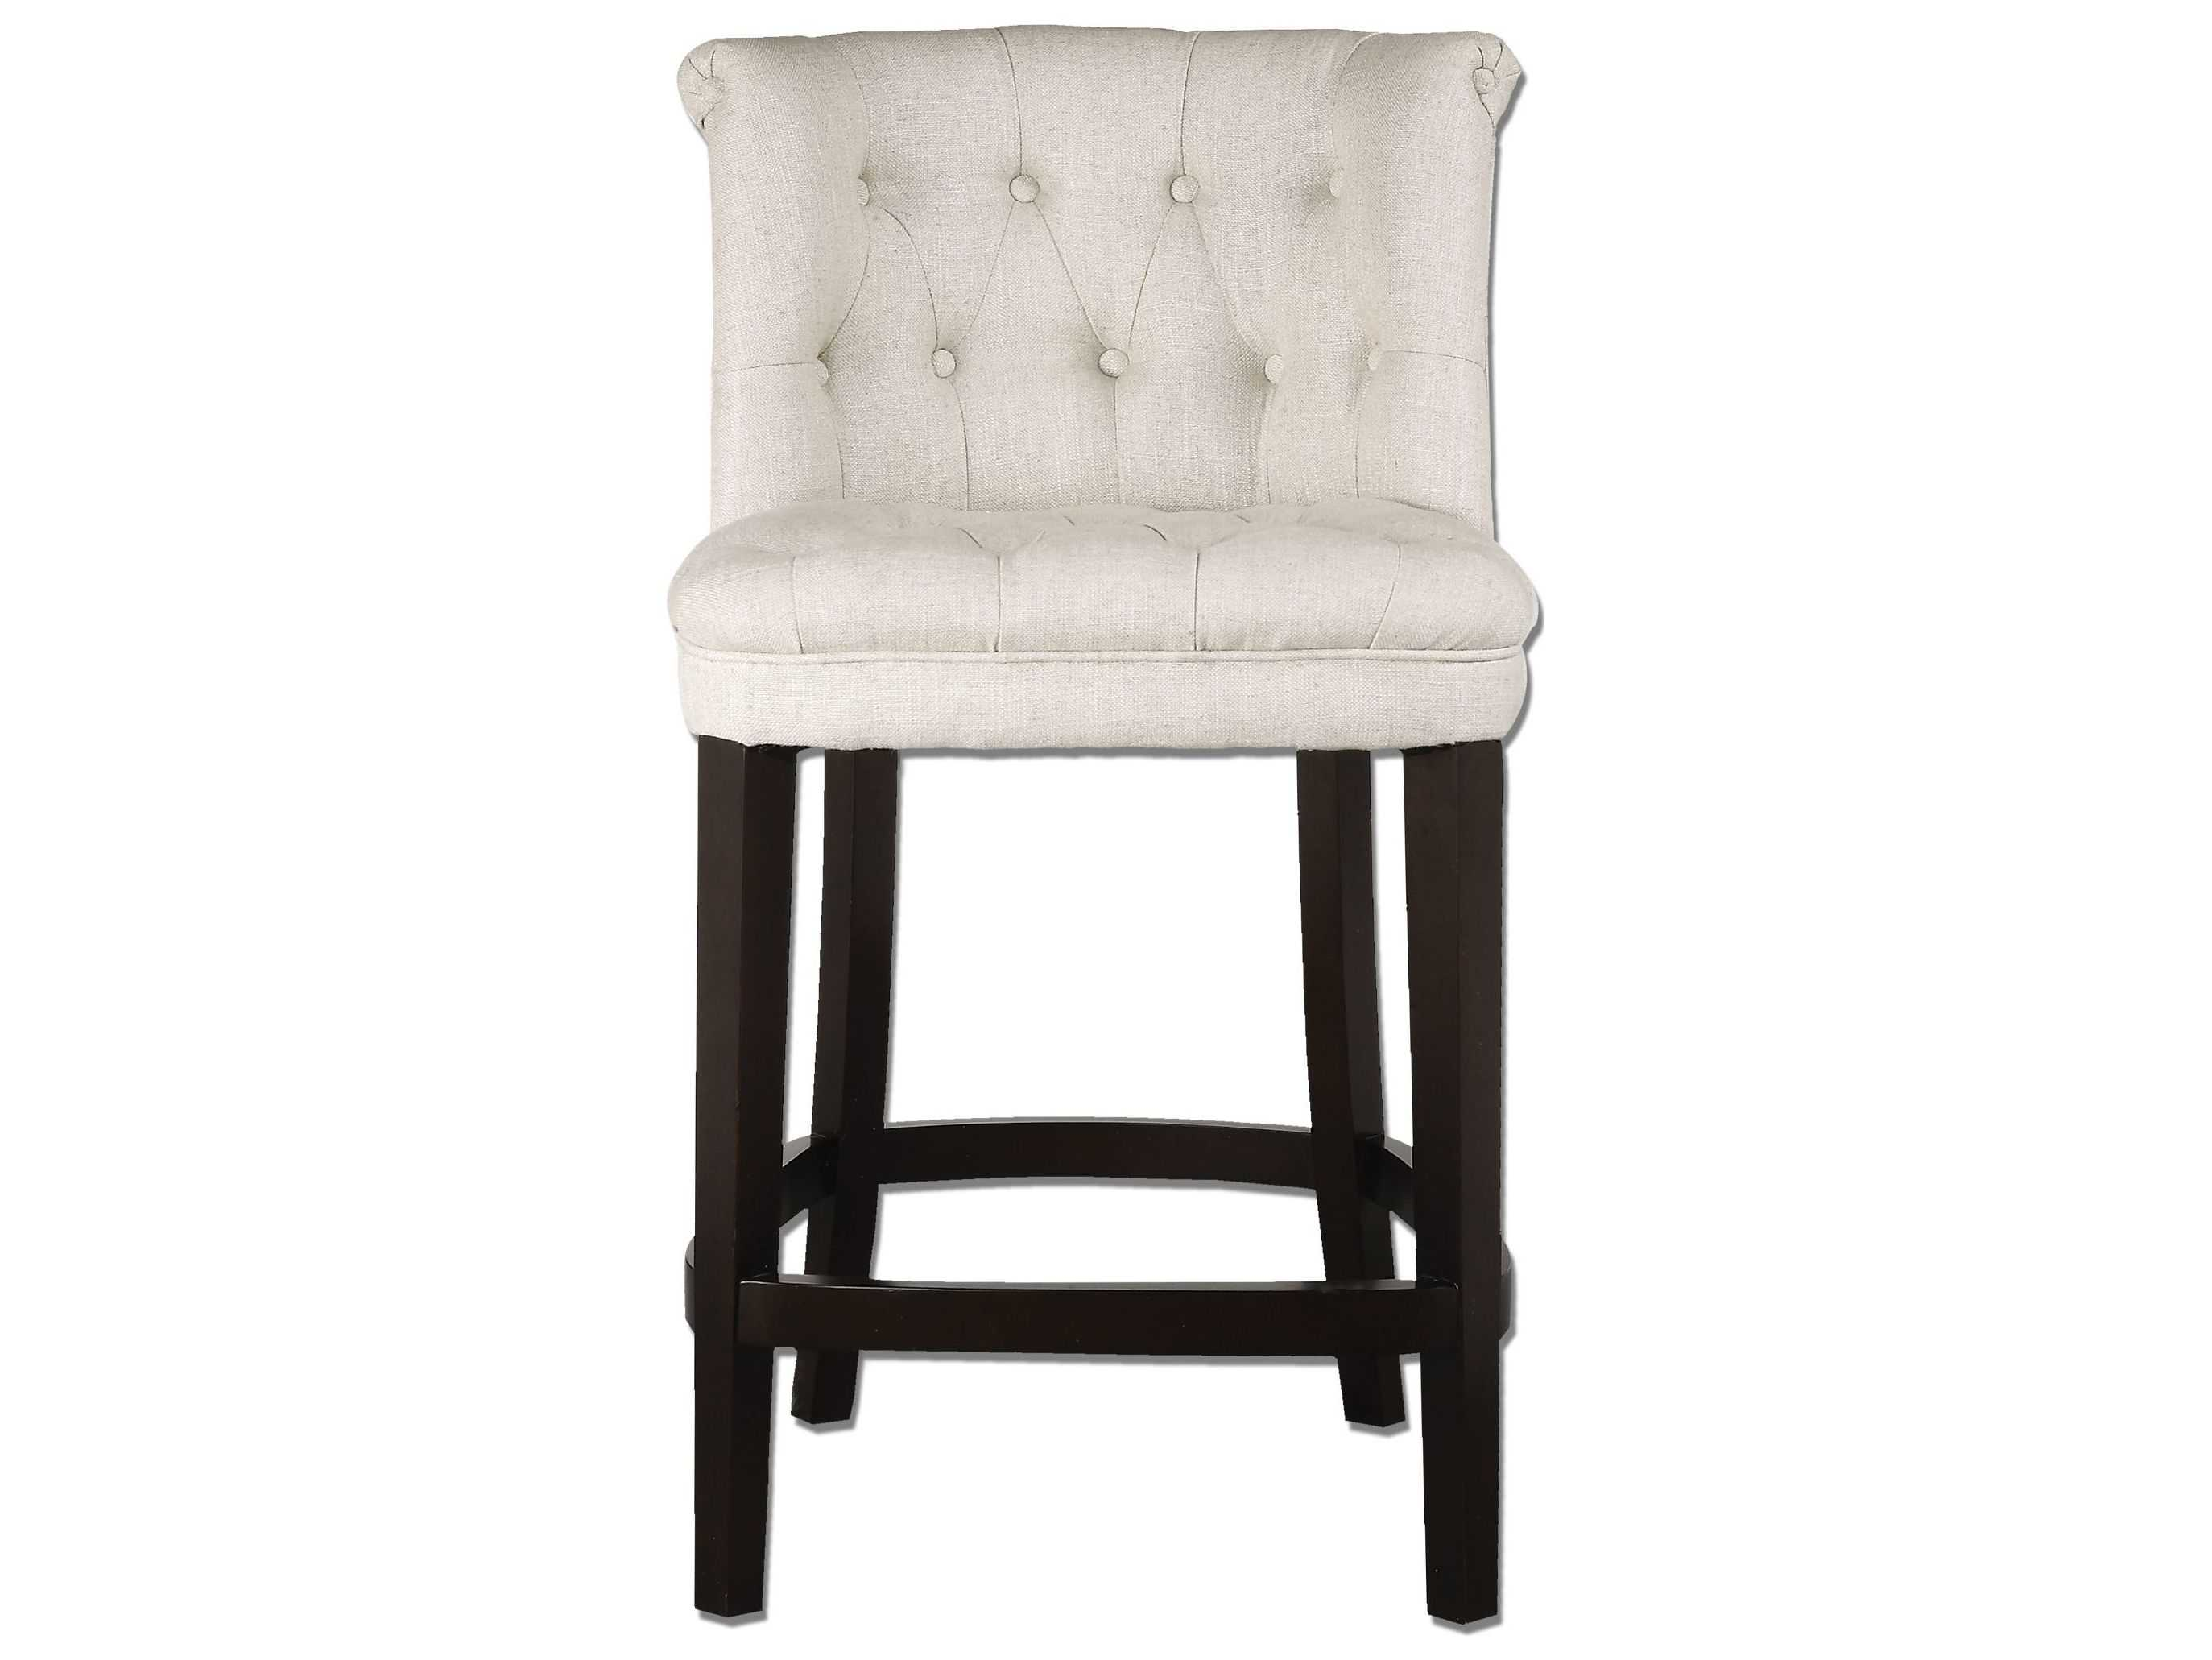 Swell Uttermost Kavanagh Tufted White Linen Counter Stool Gmtry Best Dining Table And Chair Ideas Images Gmtryco